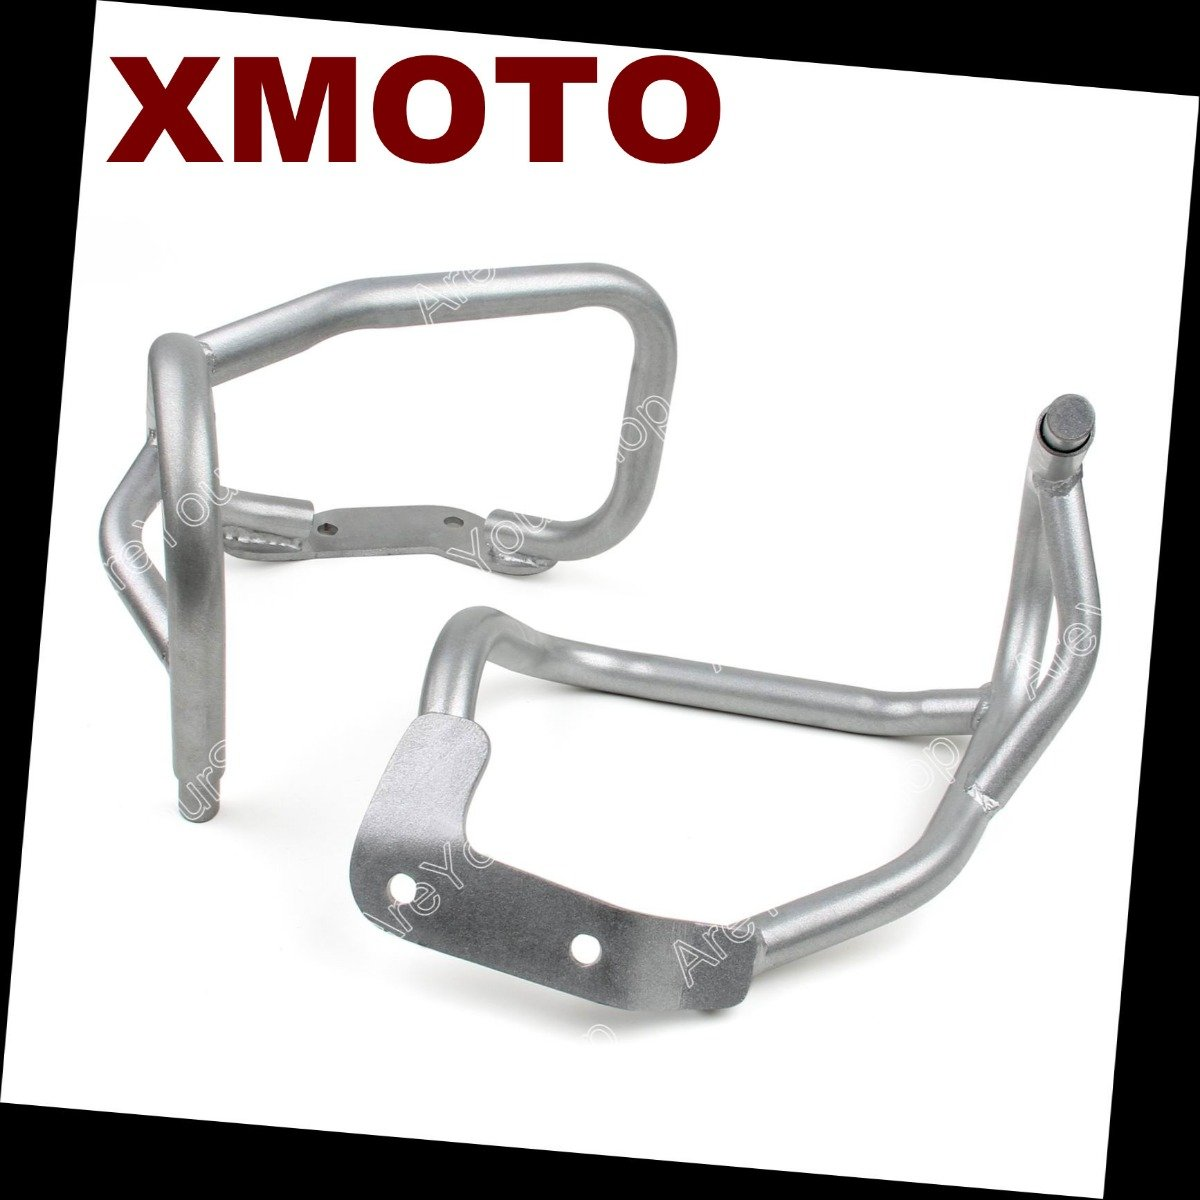 Motorcycle Saftey Lower Crash Bars Protection For Bmw R1200Gs 2004-2012